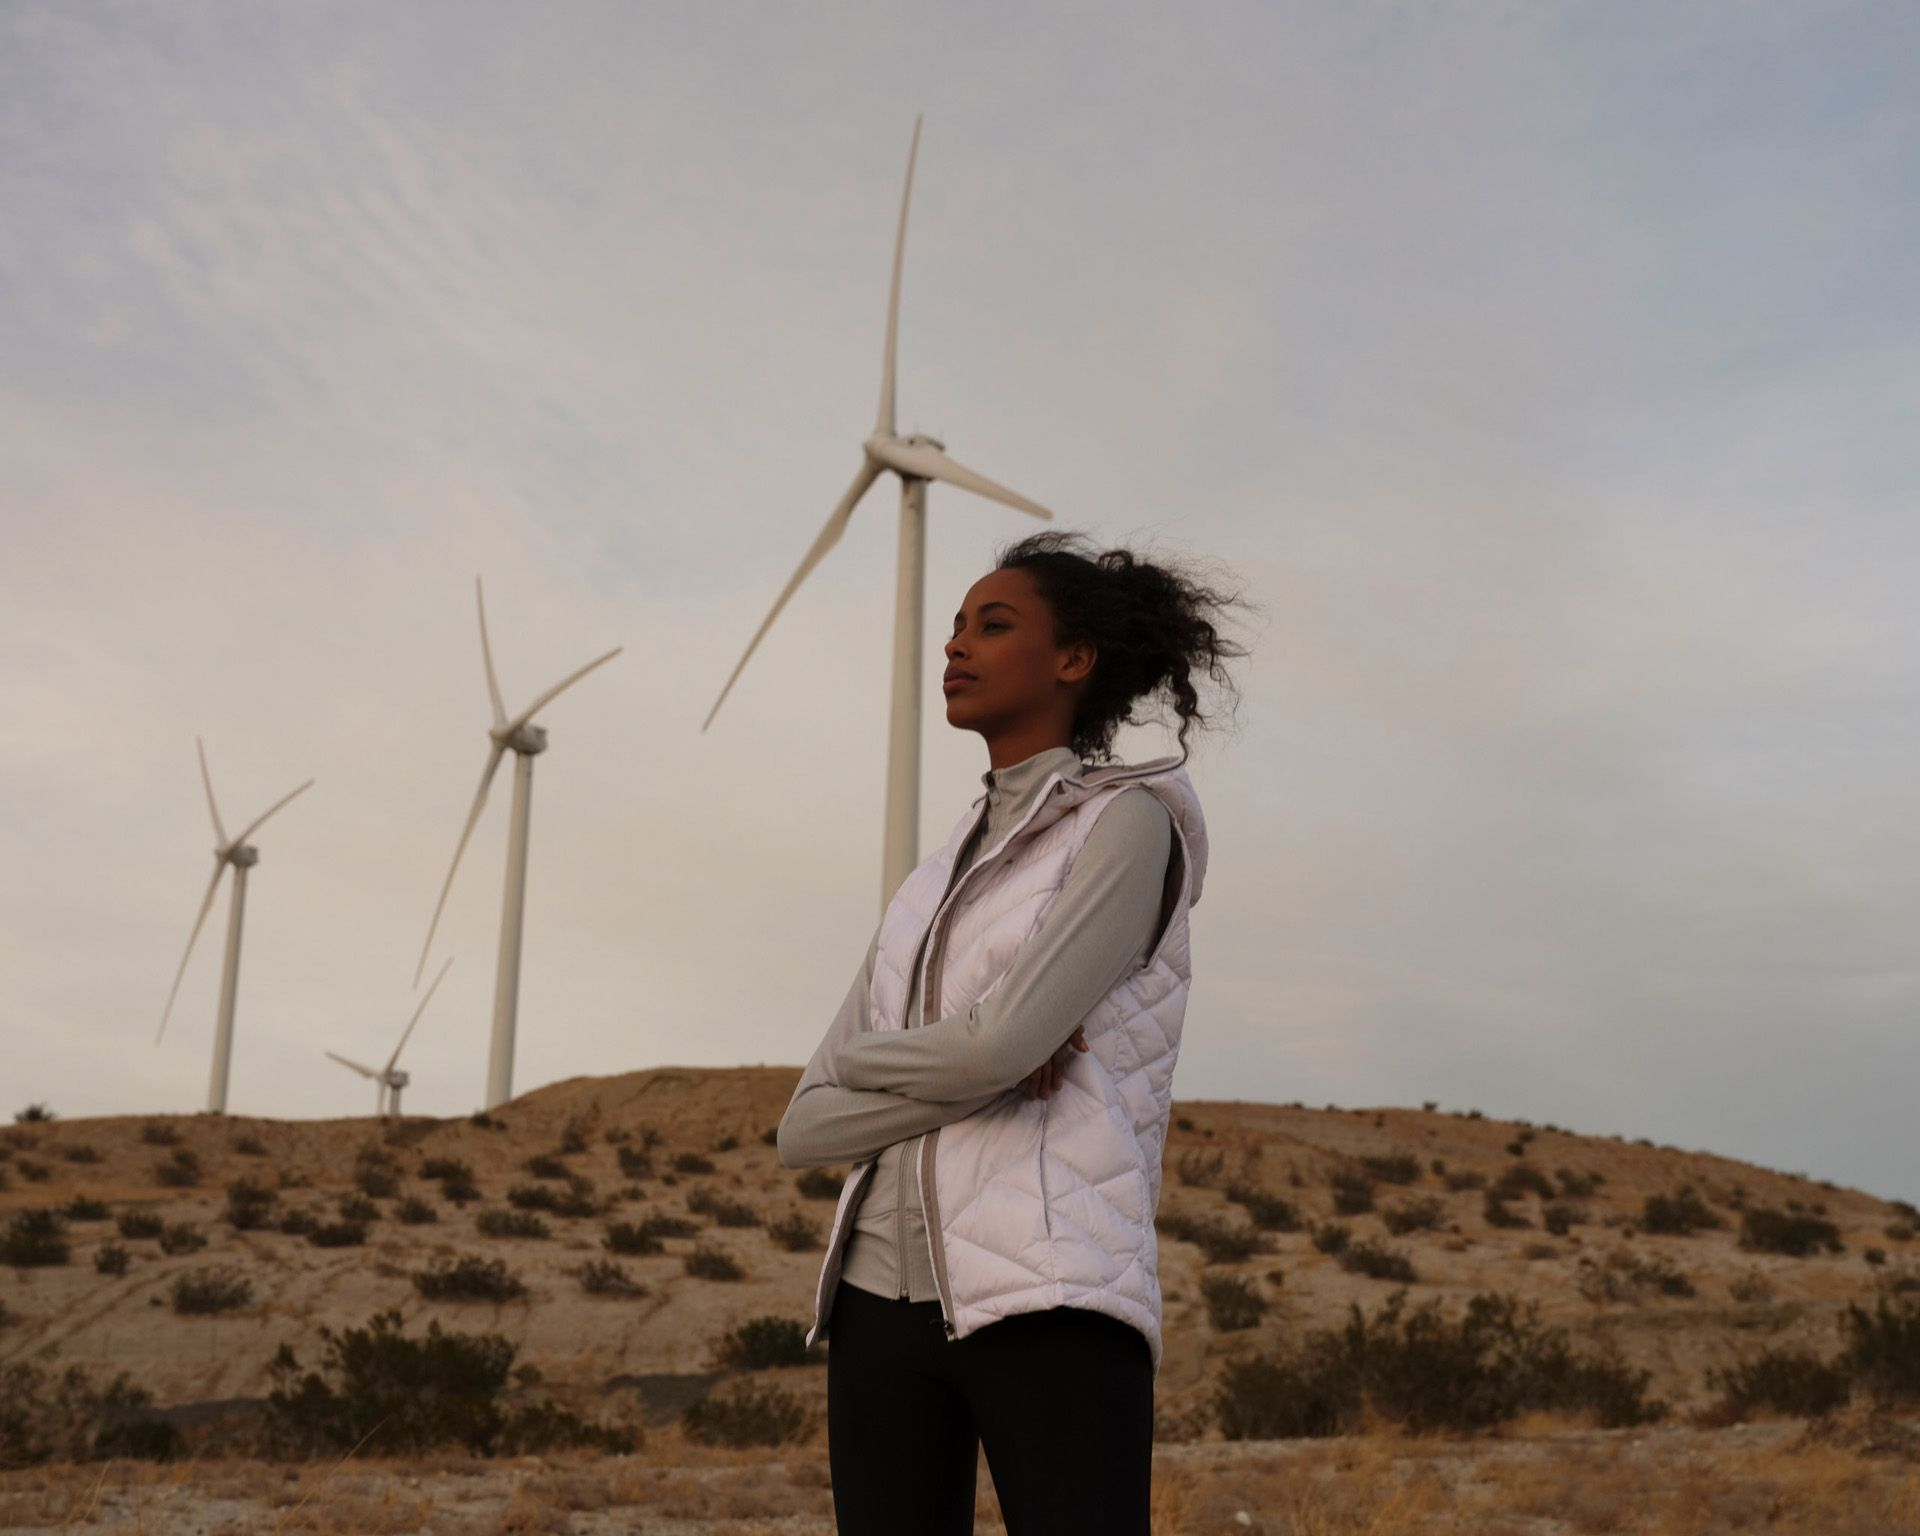 curly haired brunette female model walking in wind turbines field in Mexico at sunrise looking out to the horizon wearing pink puffy coat hair in the wind filmed by Les Gamins for Lole promotional video